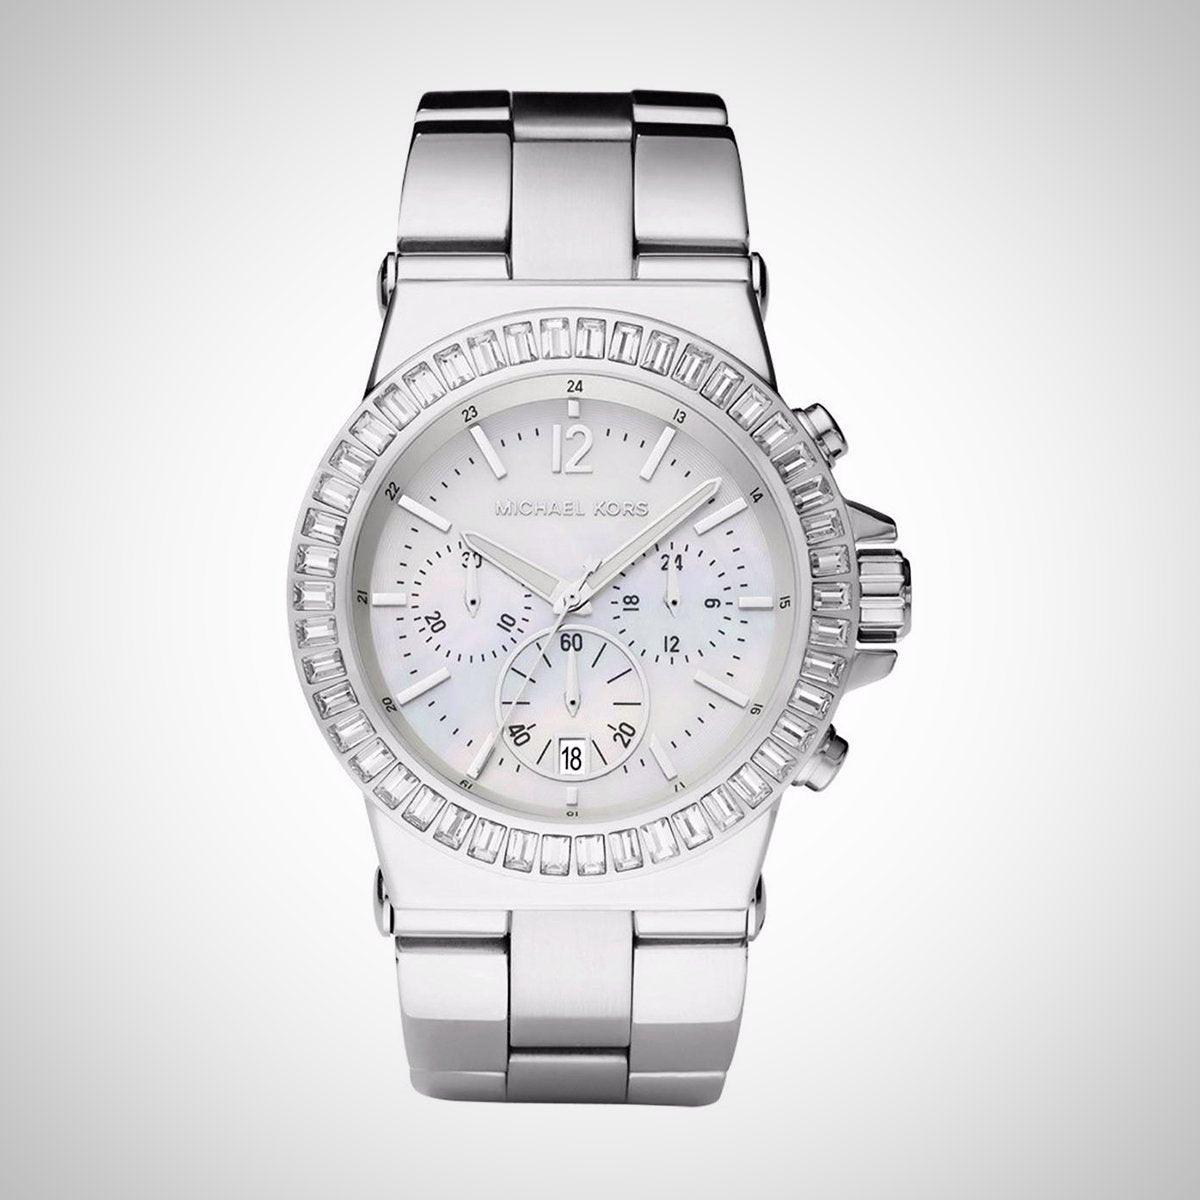 Michael Kors MK5411 Ladies' Chronograph Watch